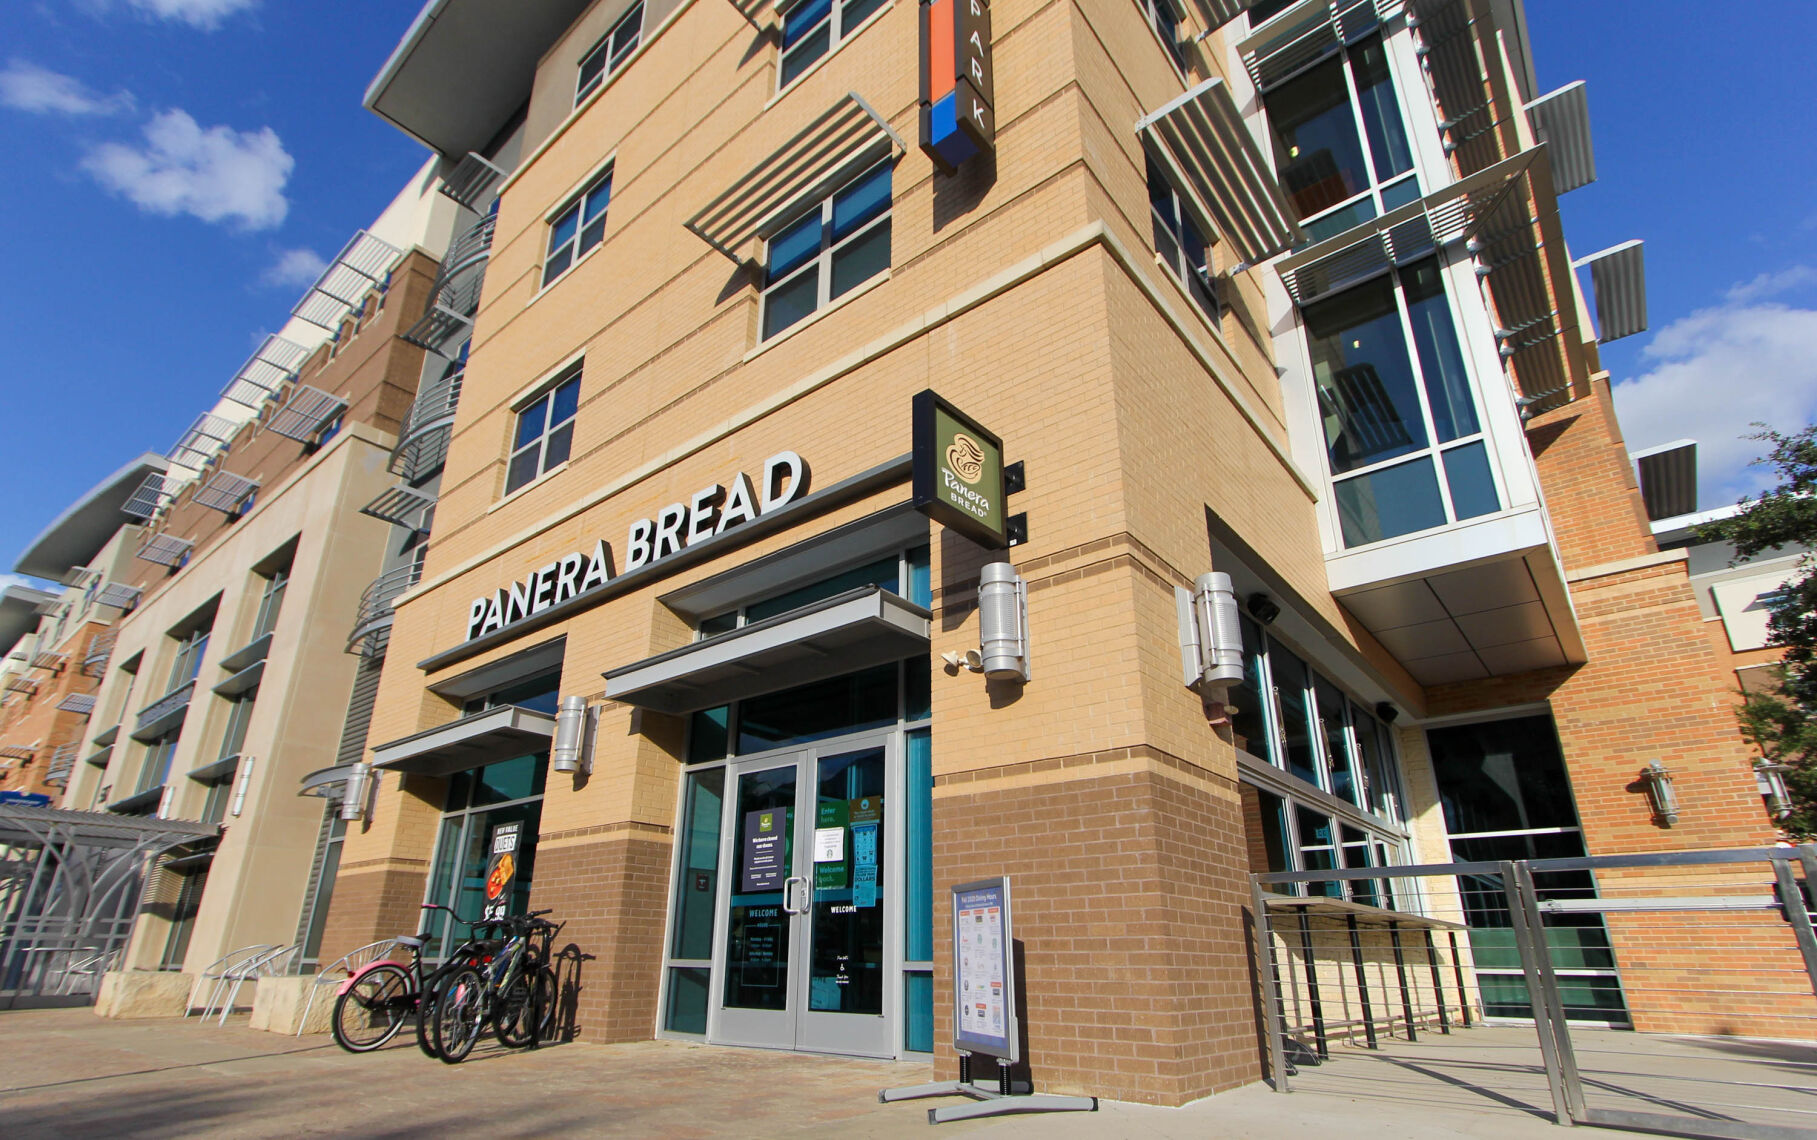 Panera Bread, Einstein Bros. Bagels among campus dining closures resulting from COVID-19